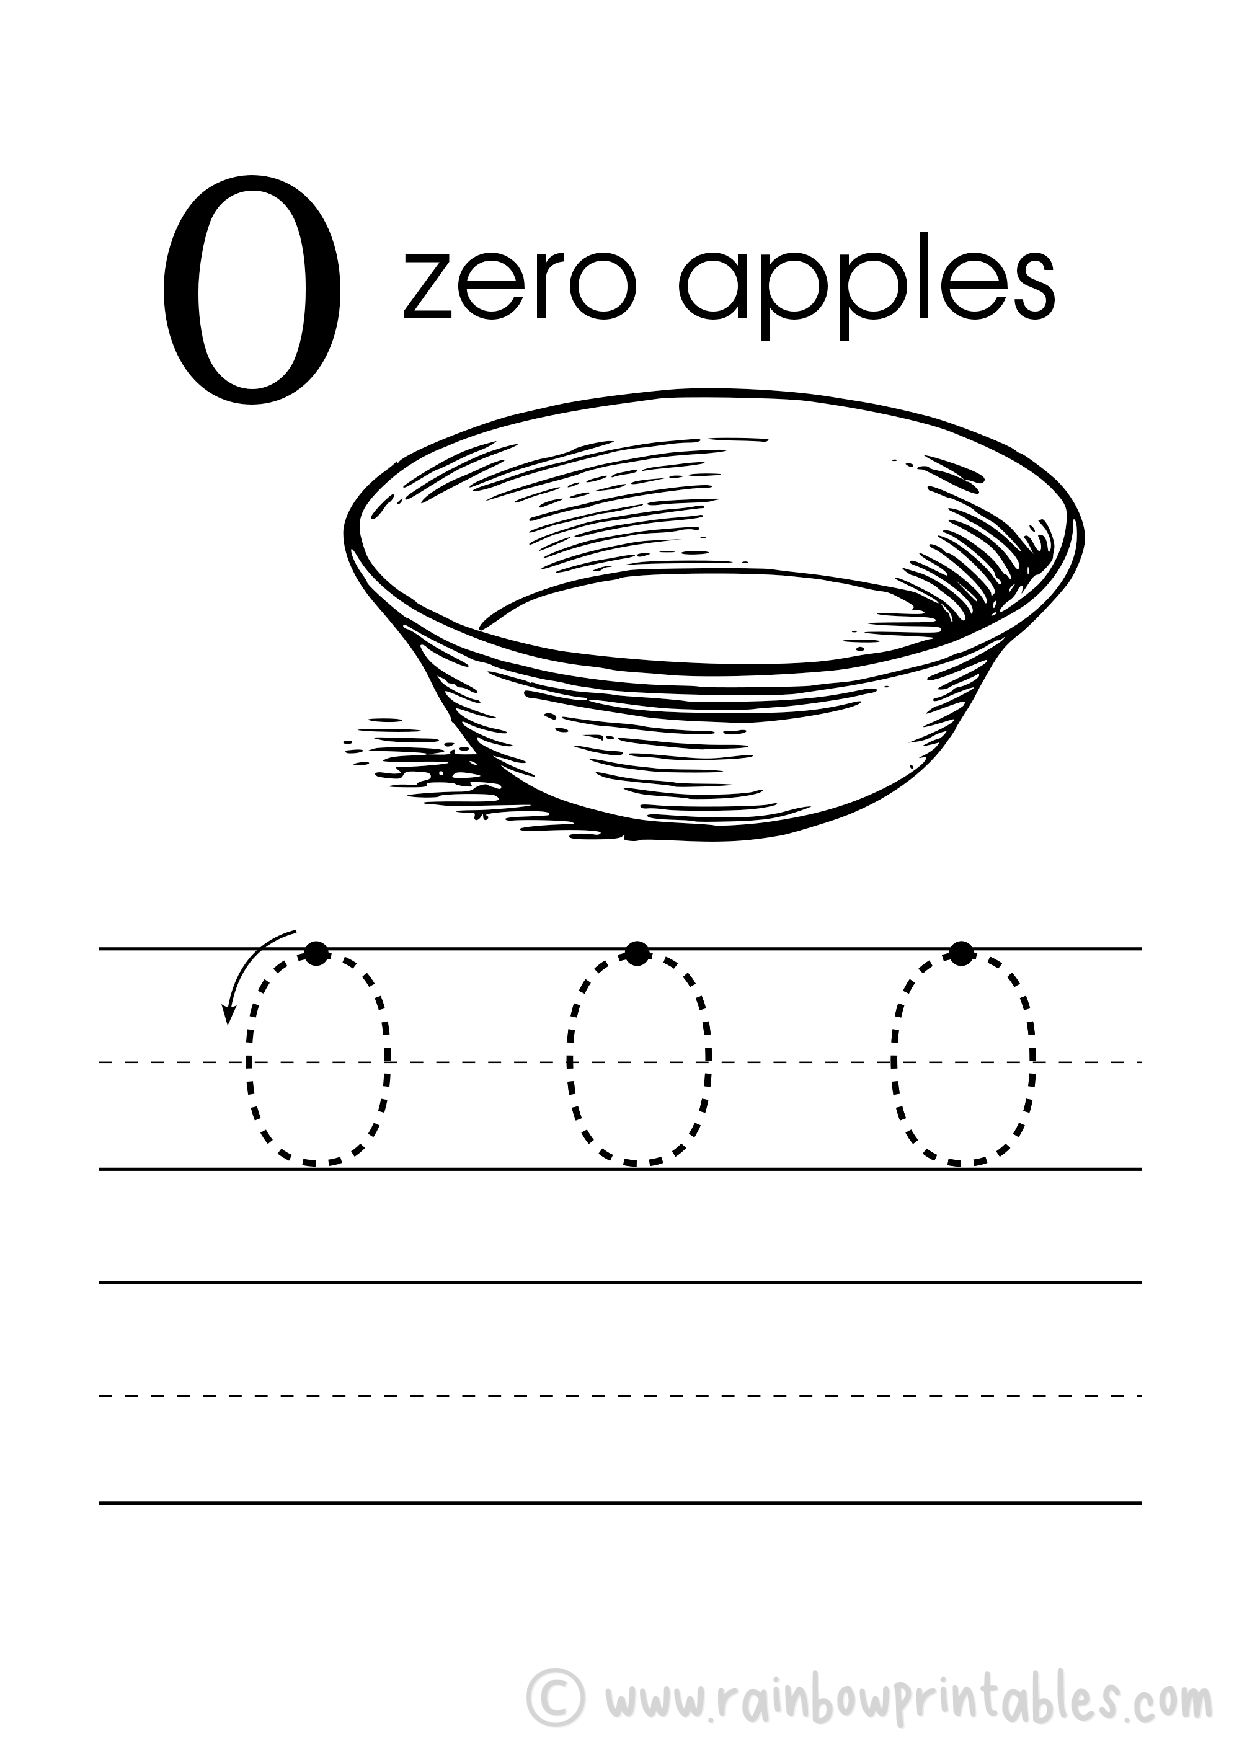 number-0-zero-handwriting-worksheet-pre-school-with-apples-in-a-bowl-puzzle-game_01